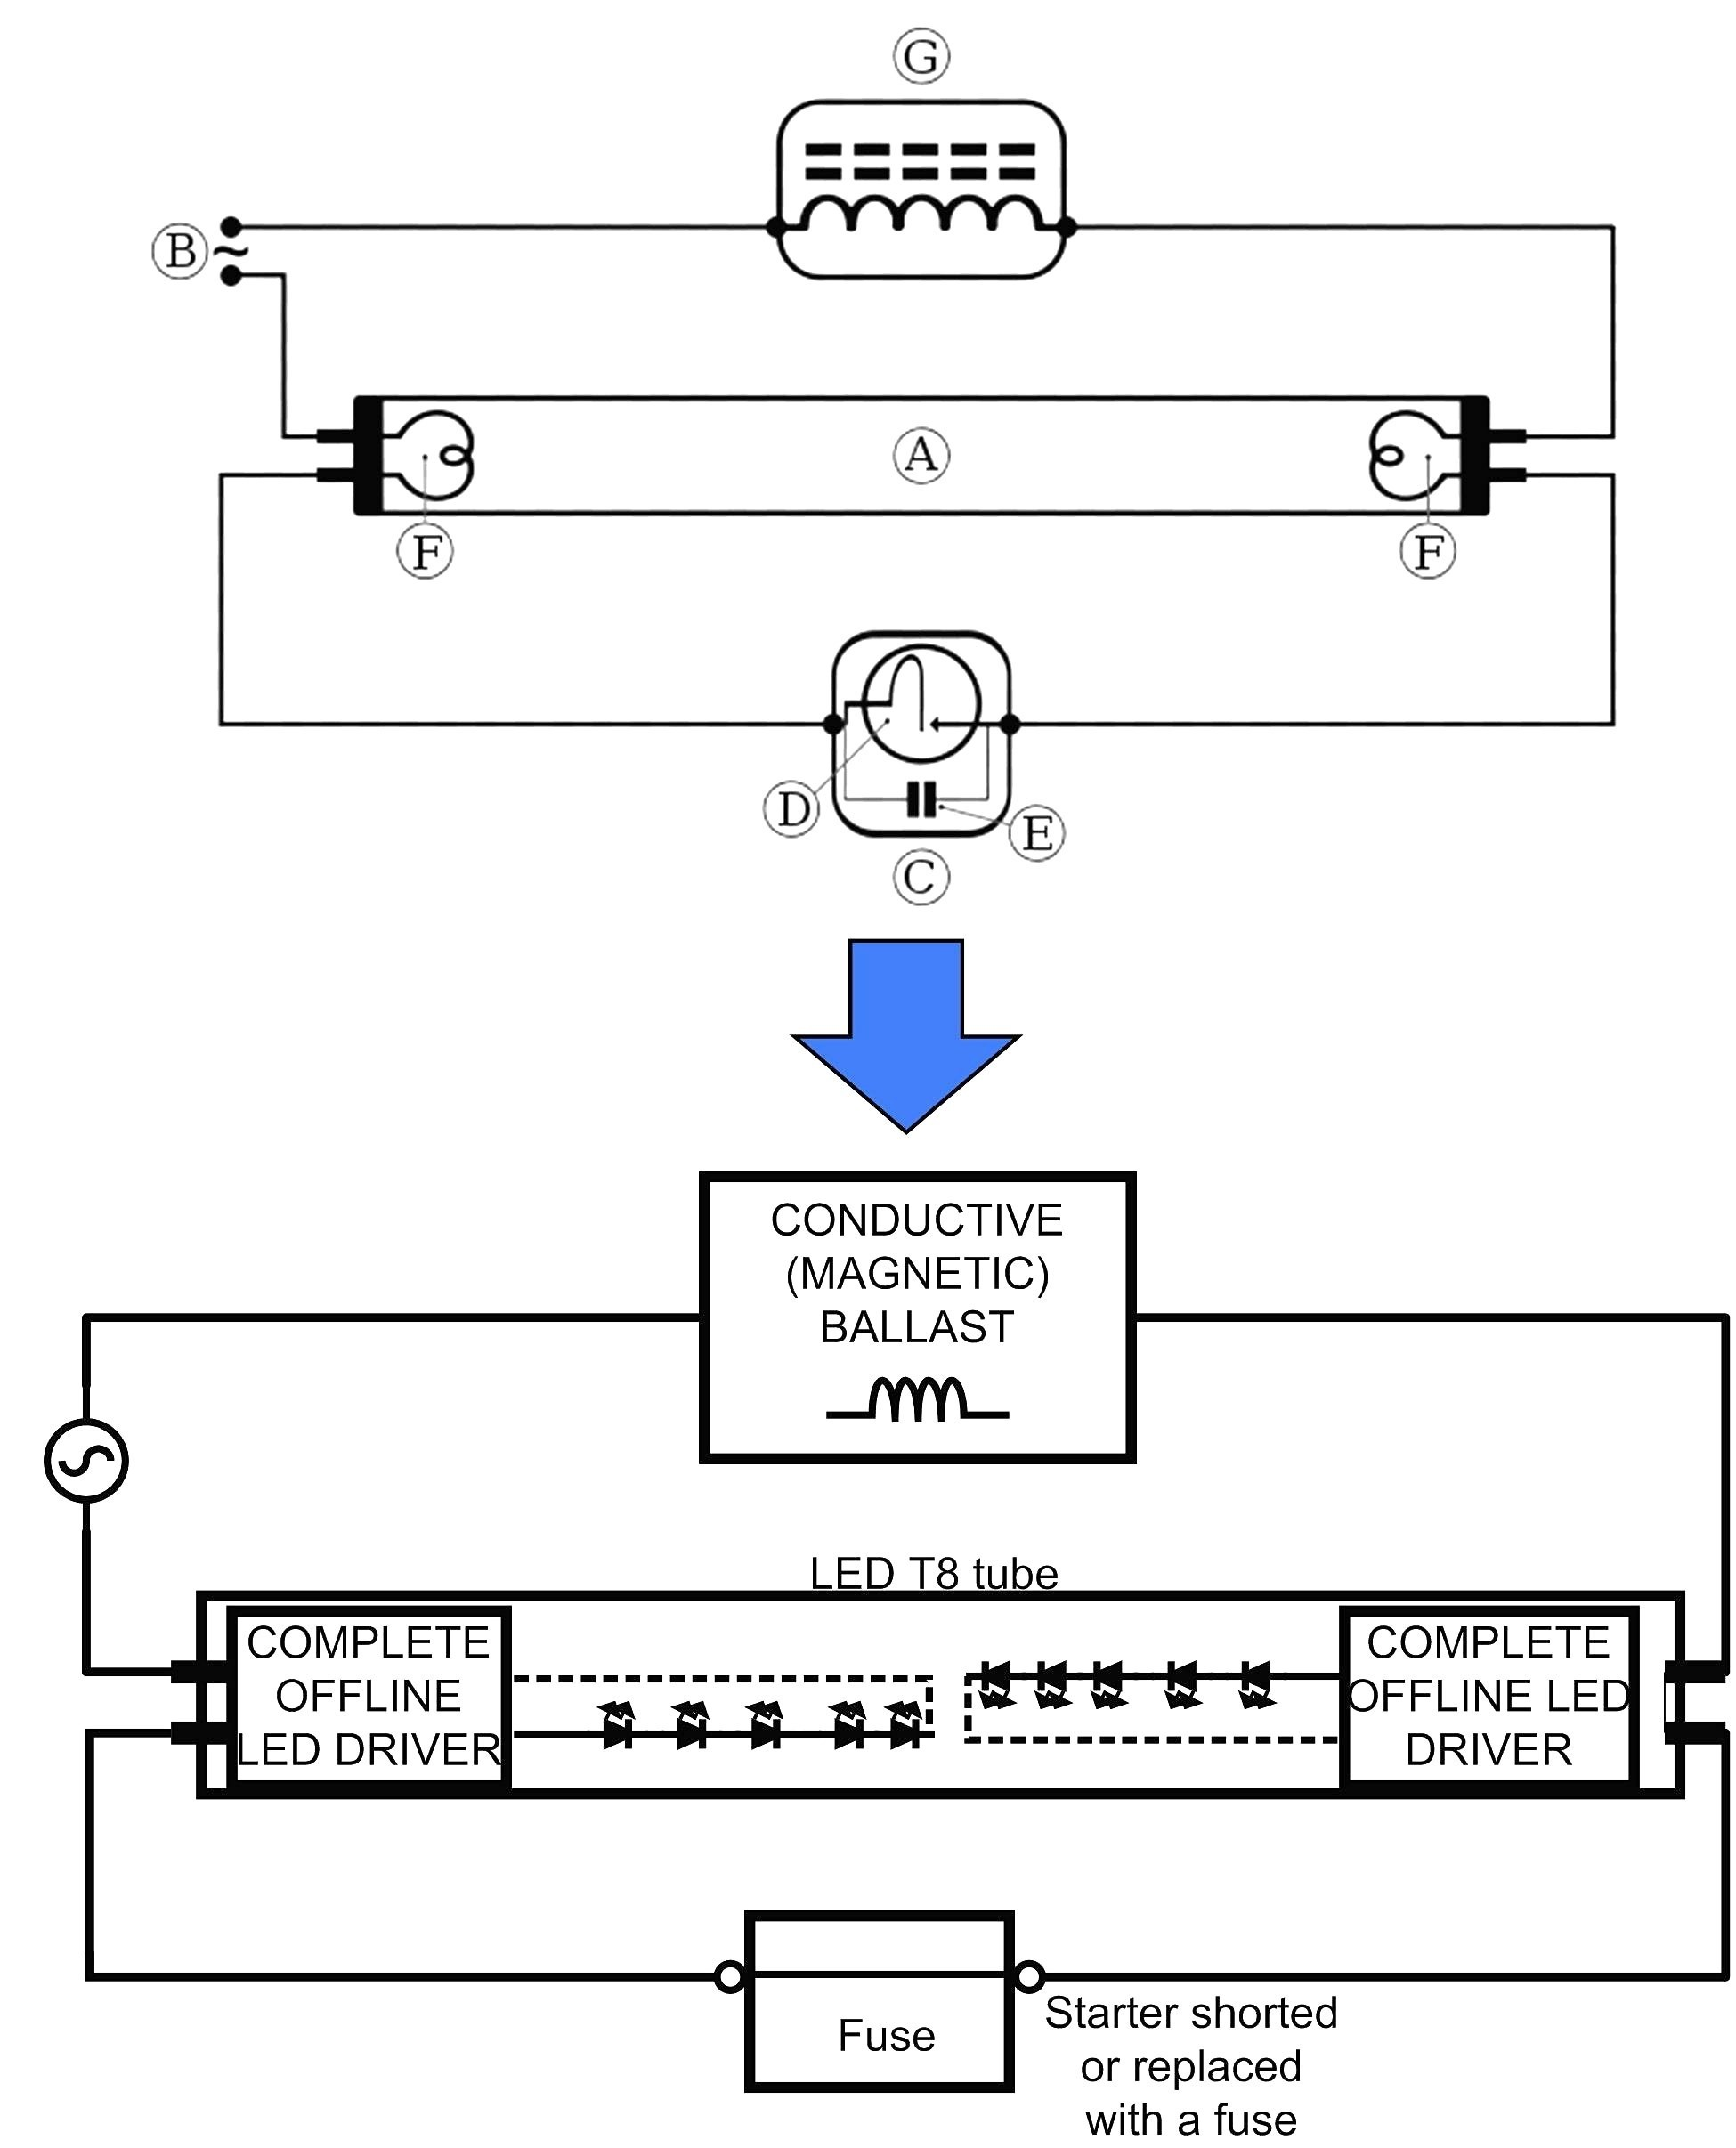 Wiring Diagram Led Tube Philips Refrence Philips Led Tube Light Wiring Diagram for T8